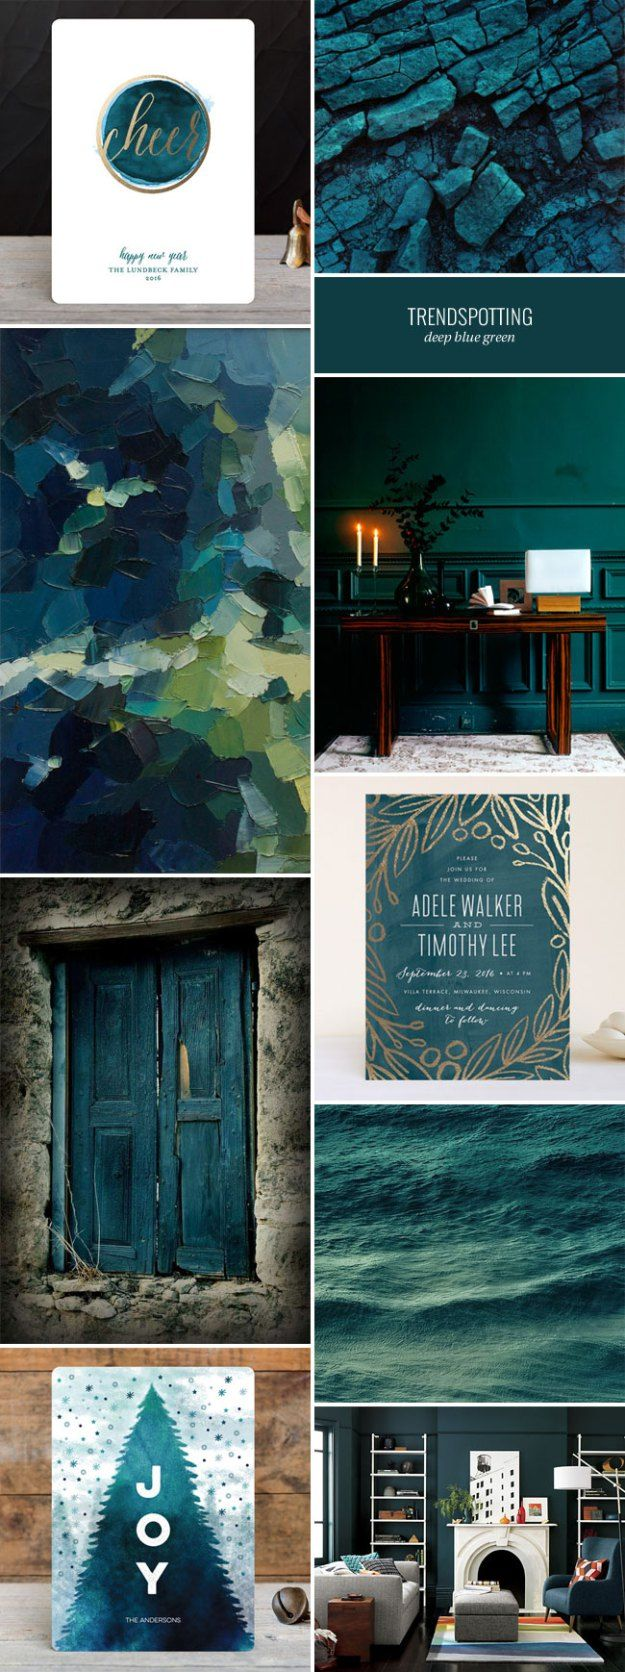 Wohndesign schlafzimmer farben  stationery color trends  deep blue green  farbharmonie in